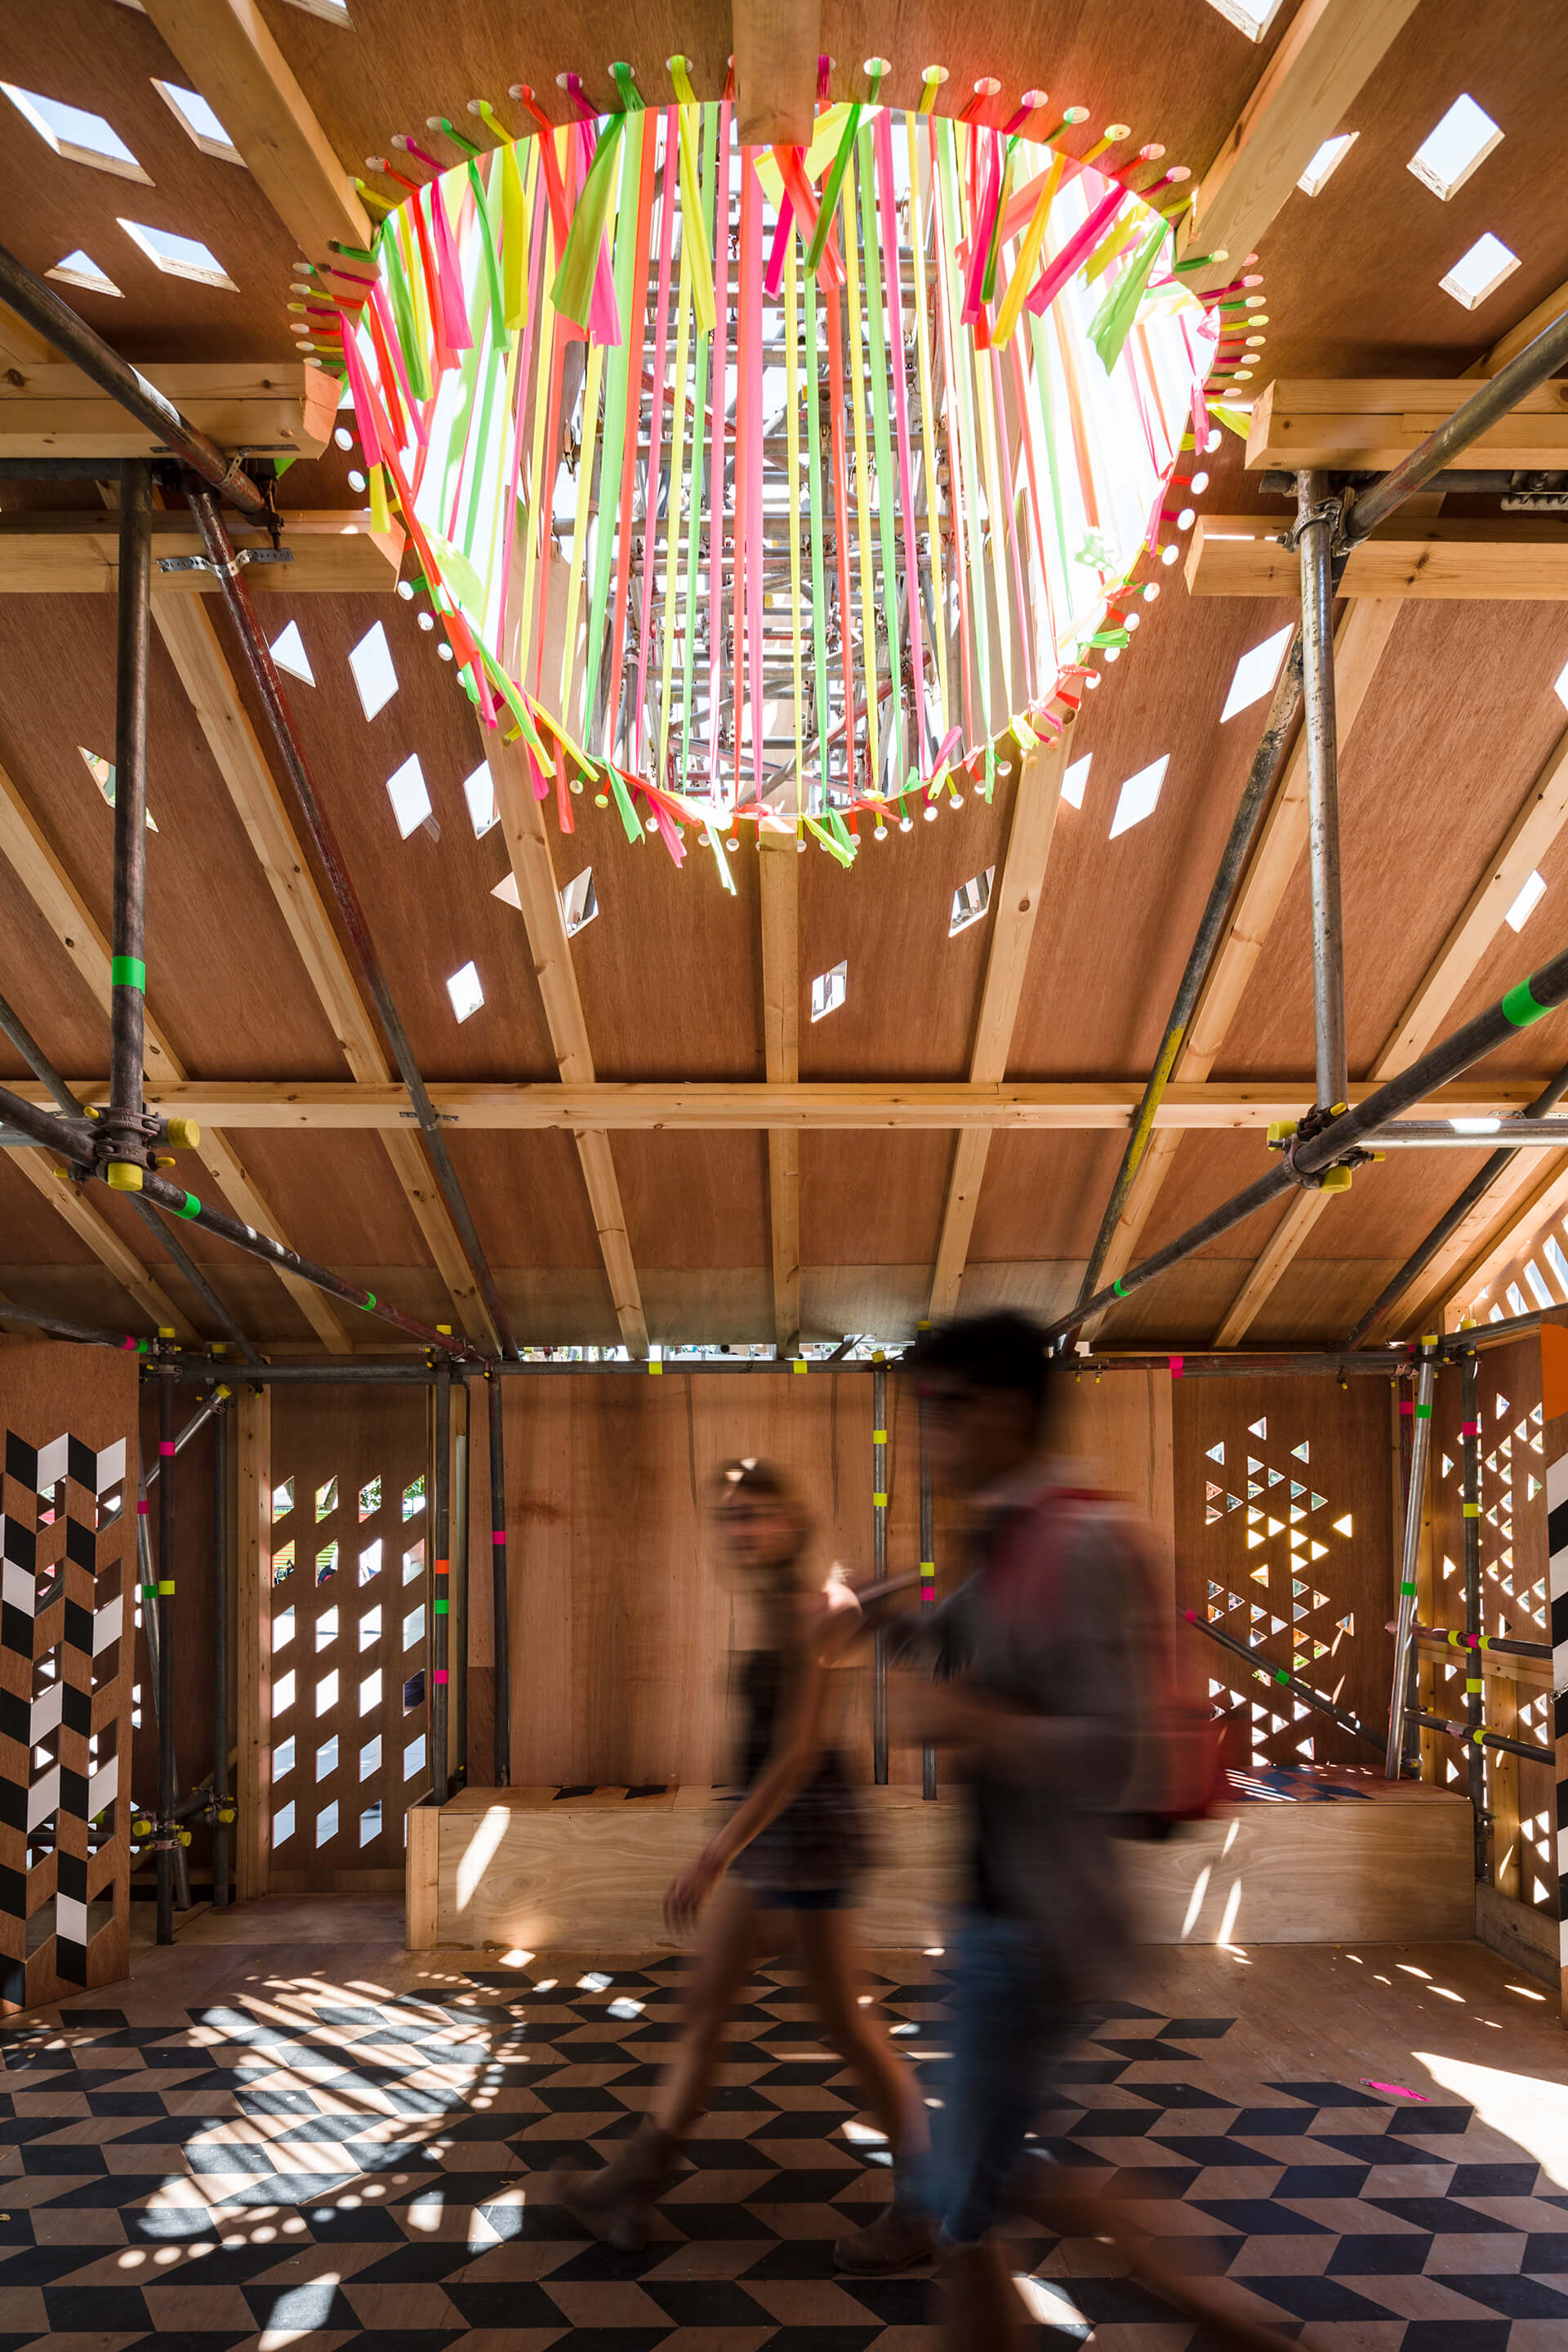 The temporary installation Temple of Agape celebrated the love of humanity | Morag Myerscough | Women in Design 2020 + | STIRworld